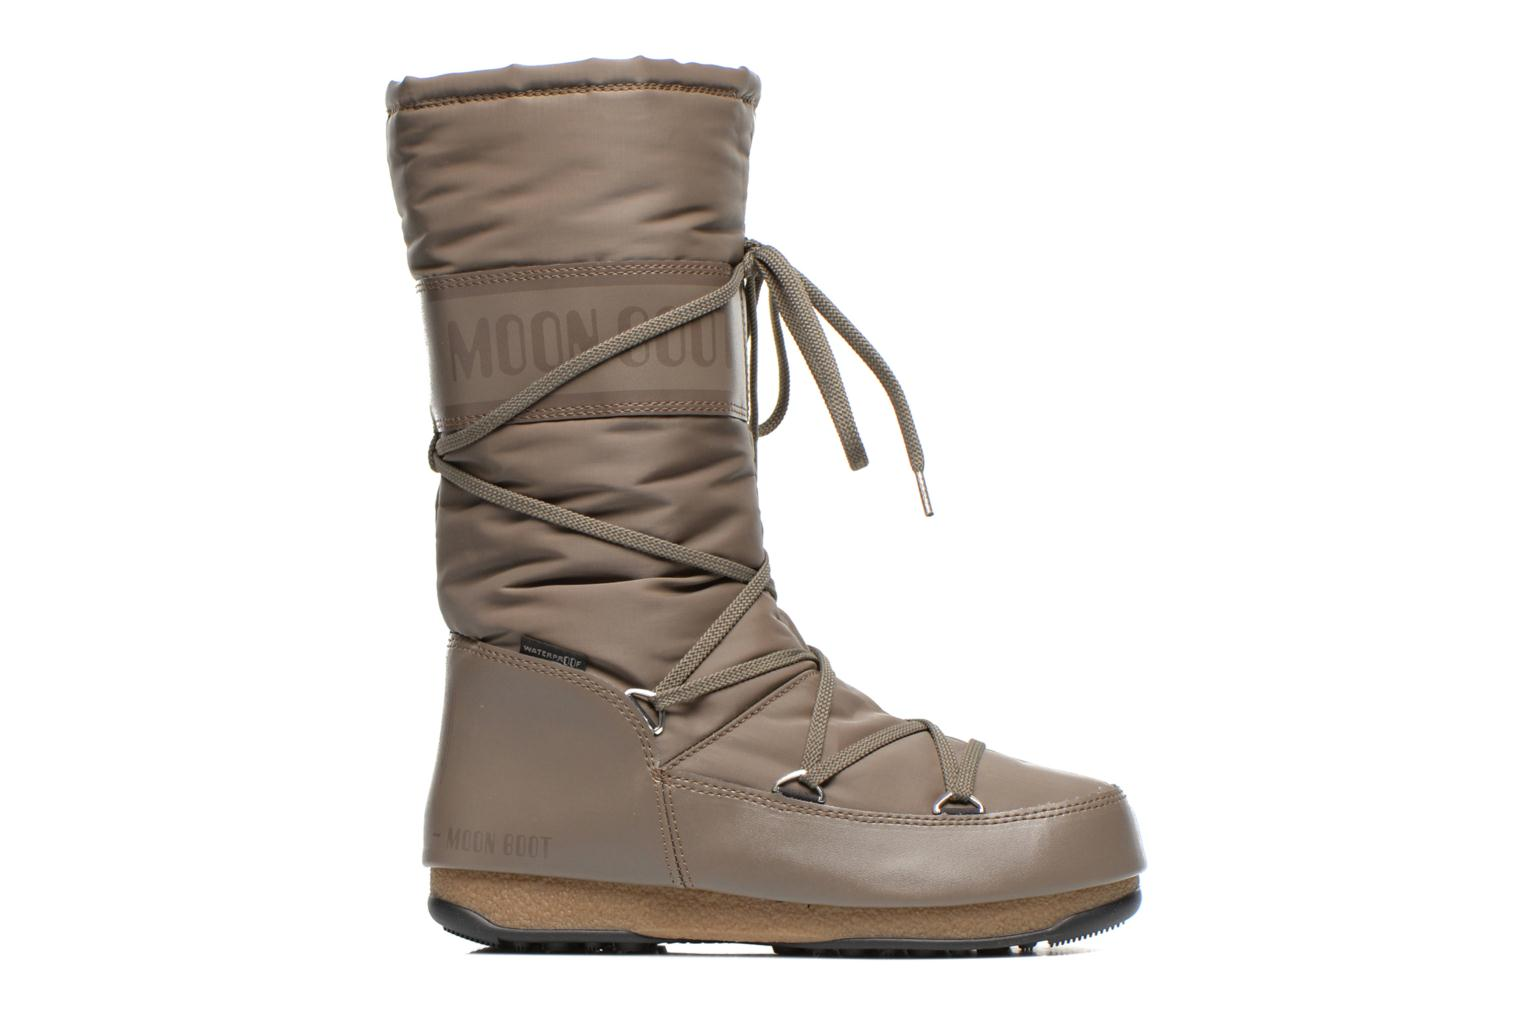 Moon Boot Shade Moon Boot Sand Soft RqnEUf5xwv